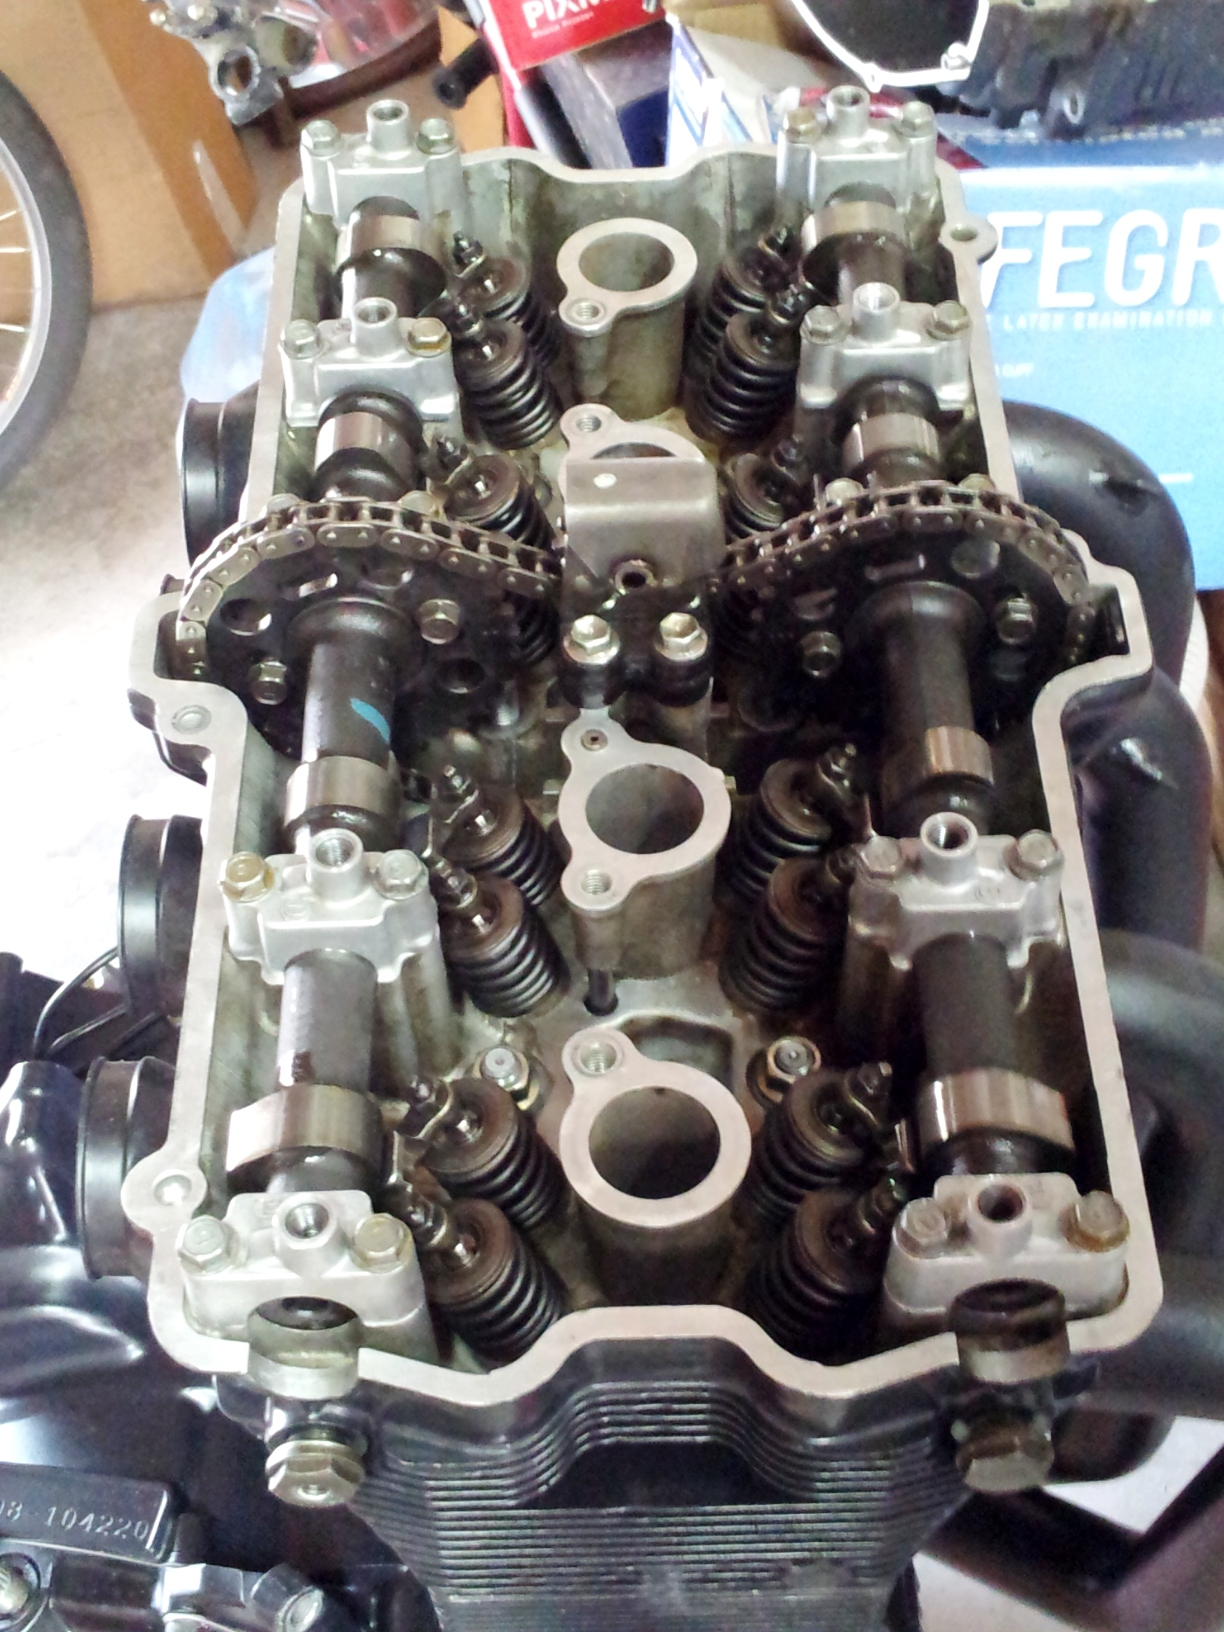 Cylinder Head without the Valve Cover